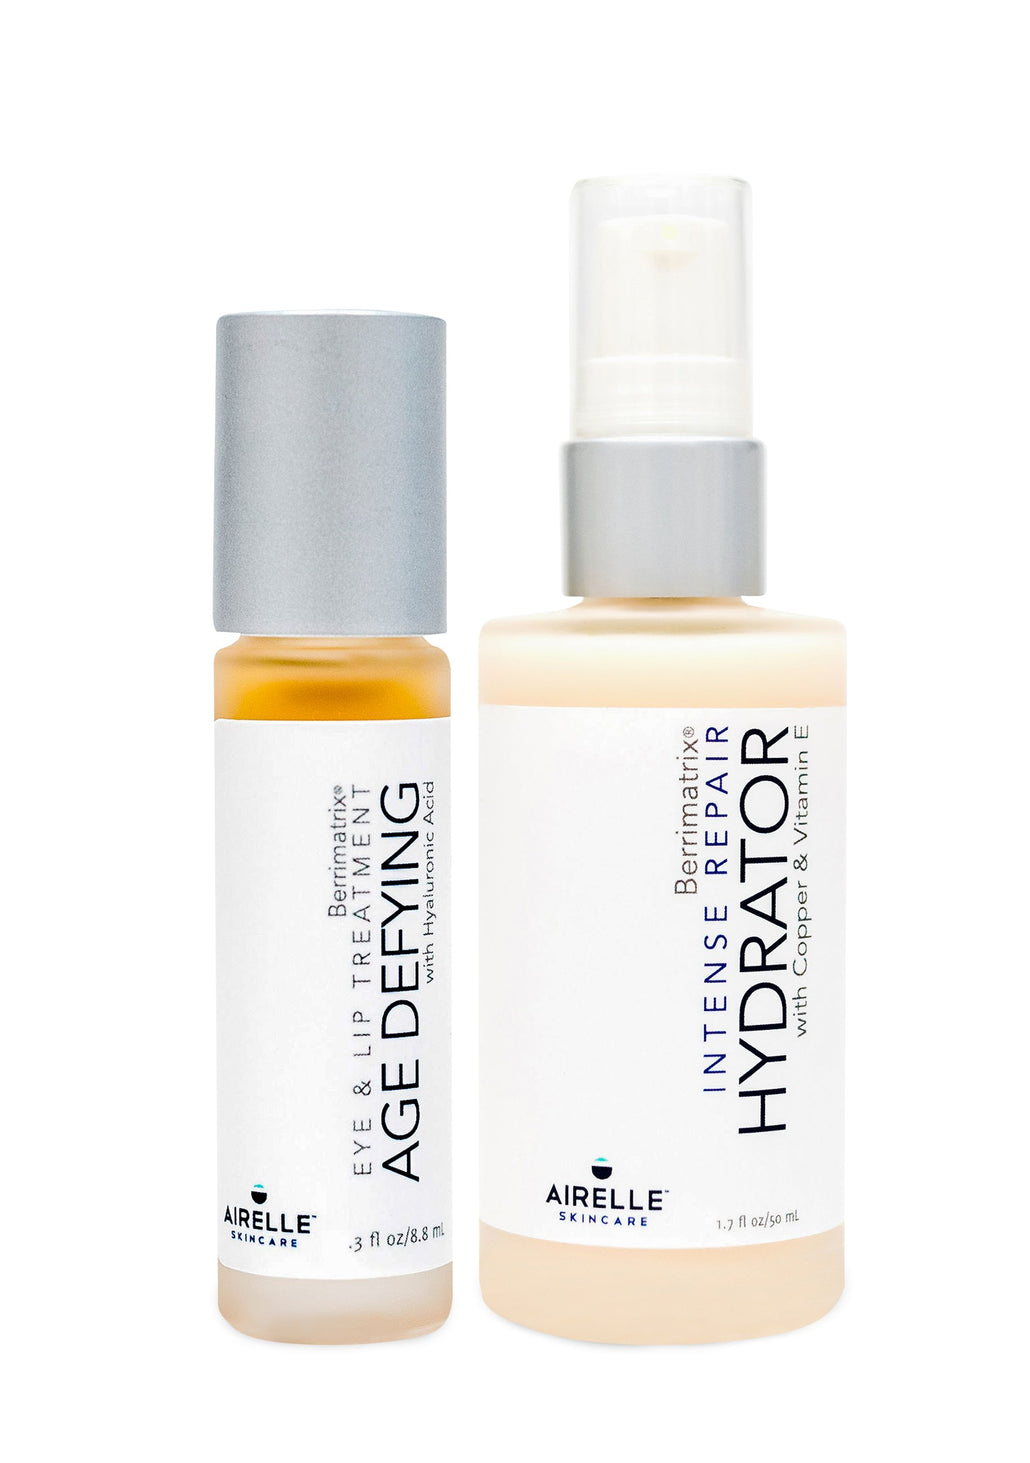 Airelle's Hydrating Repair Complex and Age-Defying Eye and Lip Treatment